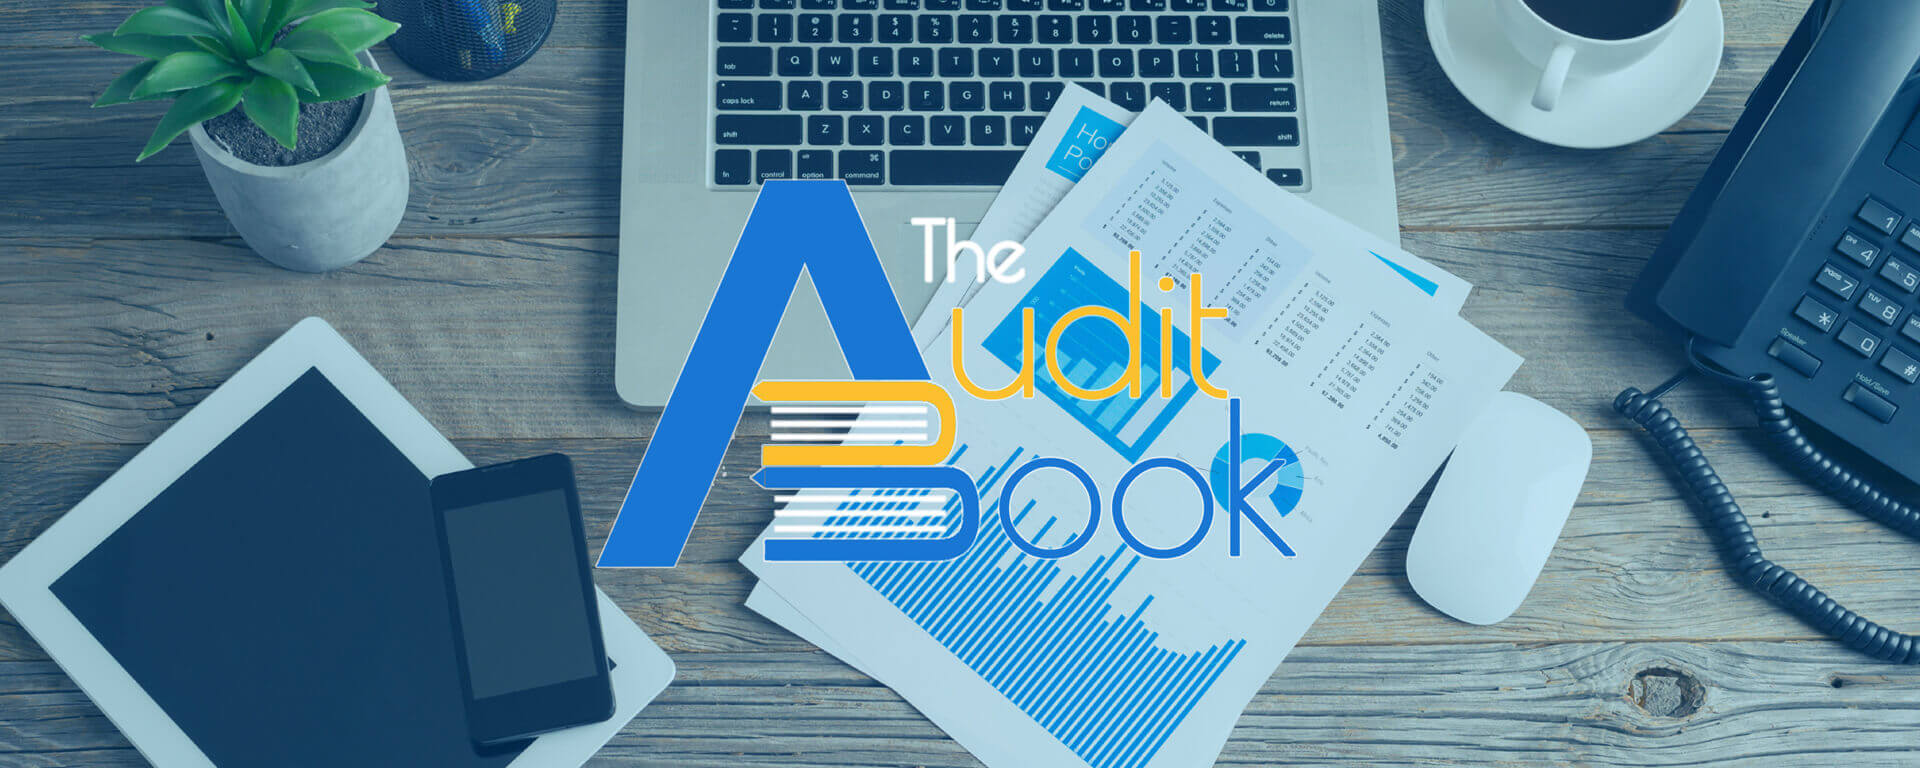 The Audit Book